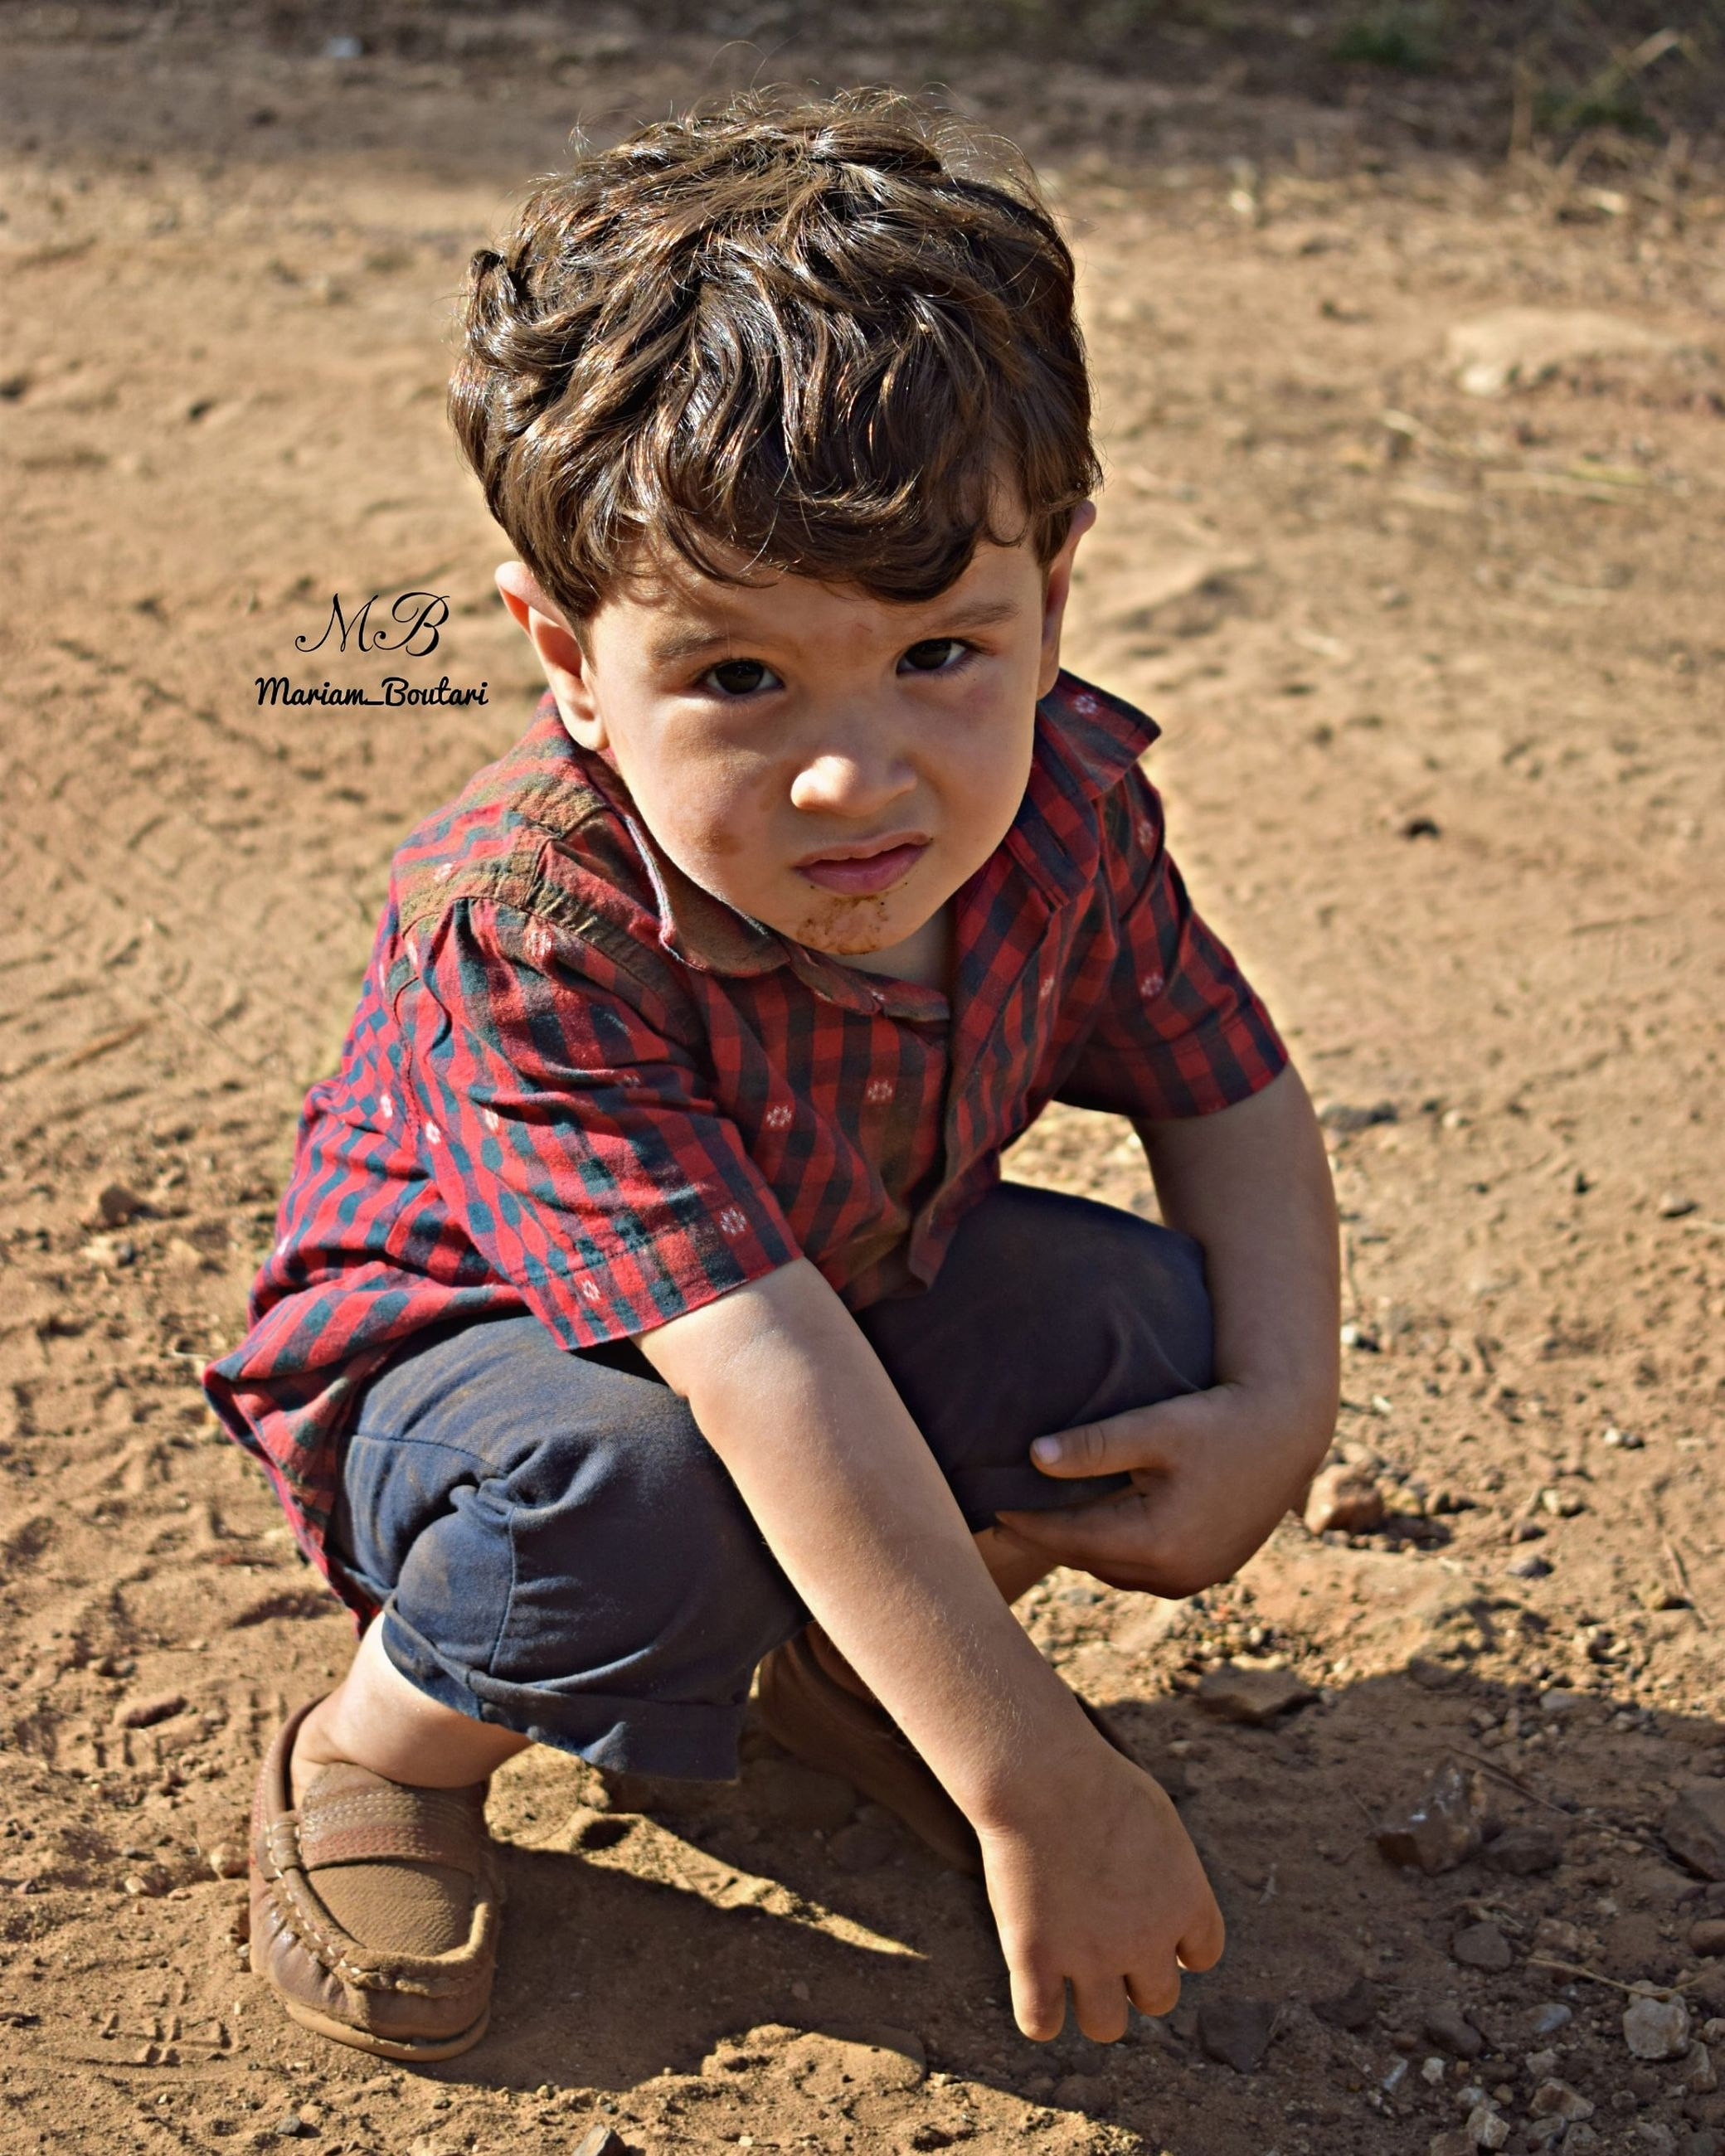 childhood, child, full length, boys, males, one person, men, sitting, real people, land, lifestyles, portrait, looking at camera, casual clothing, leisure activity, cute, front view, innocence, outdoors